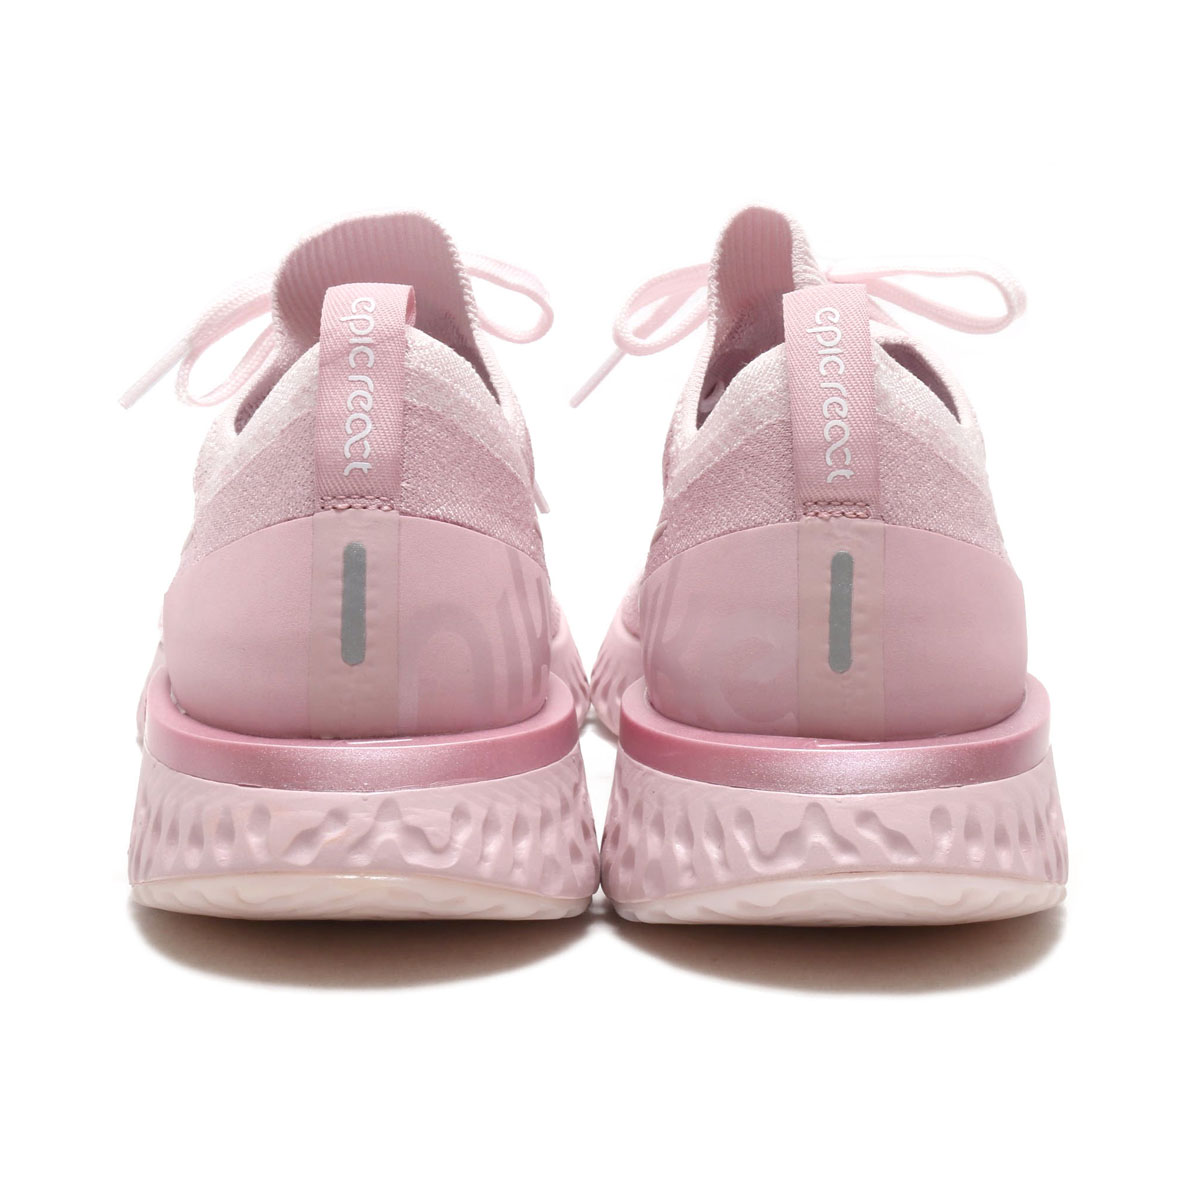 37c6dbe9738 NIKE EPIC REACT FLYKNIT (Kie Ney pick re-act fly knit) (PEARL PINK PEARL  PINK-BARELY ROSE) 18SU-S